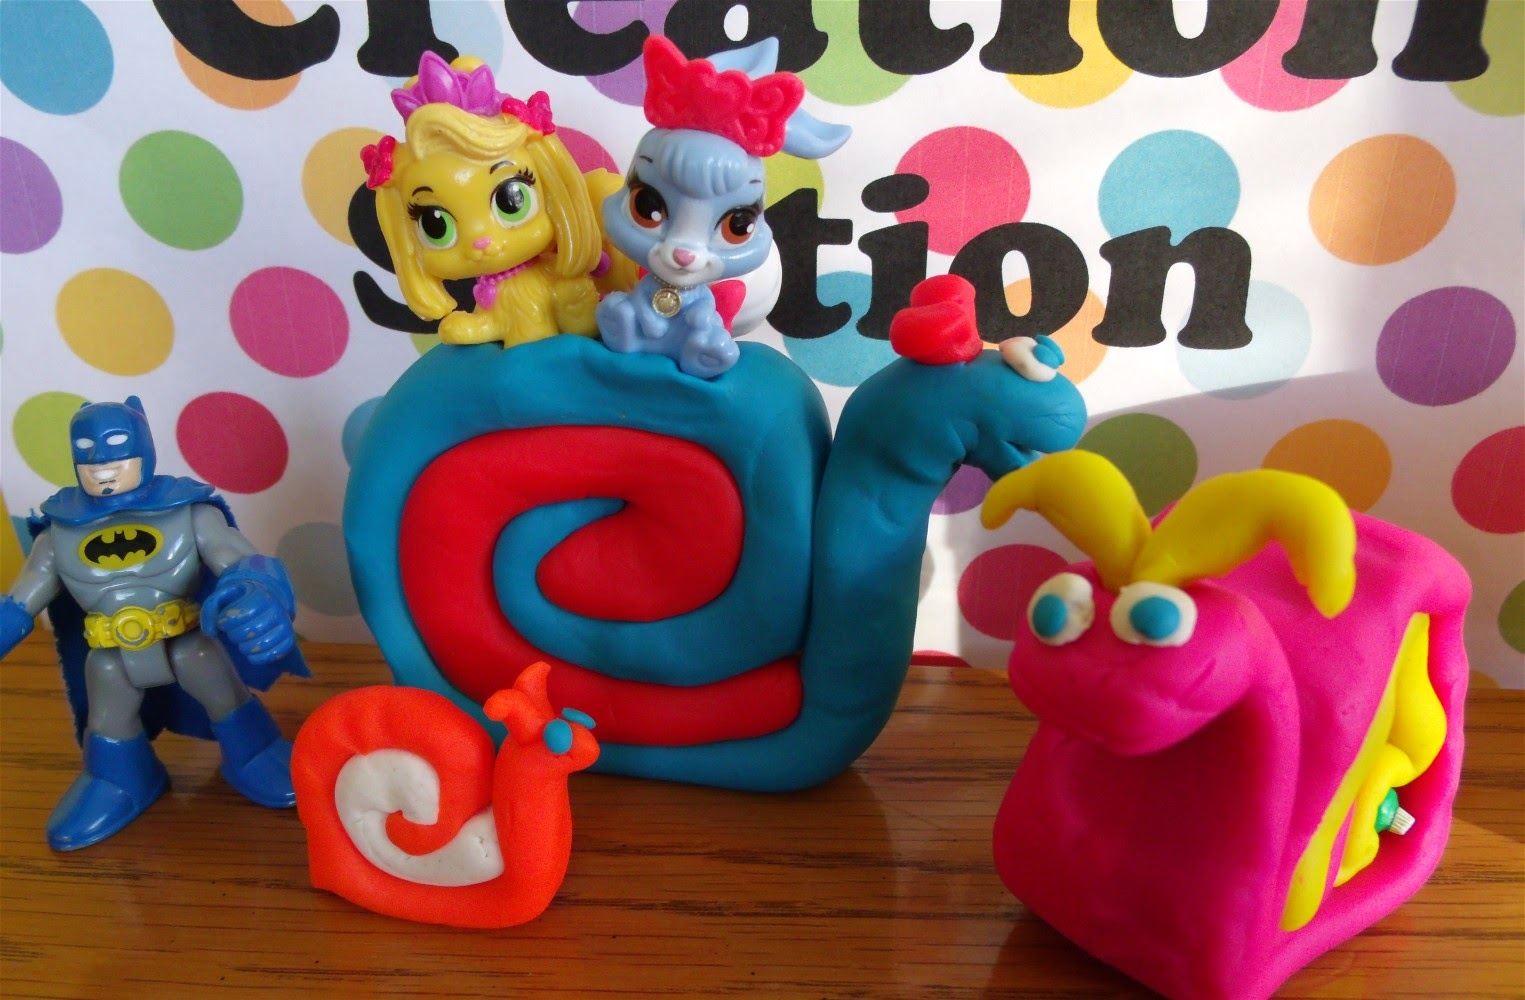 Shopkins and Palace Pets ride on Play Doh Snails